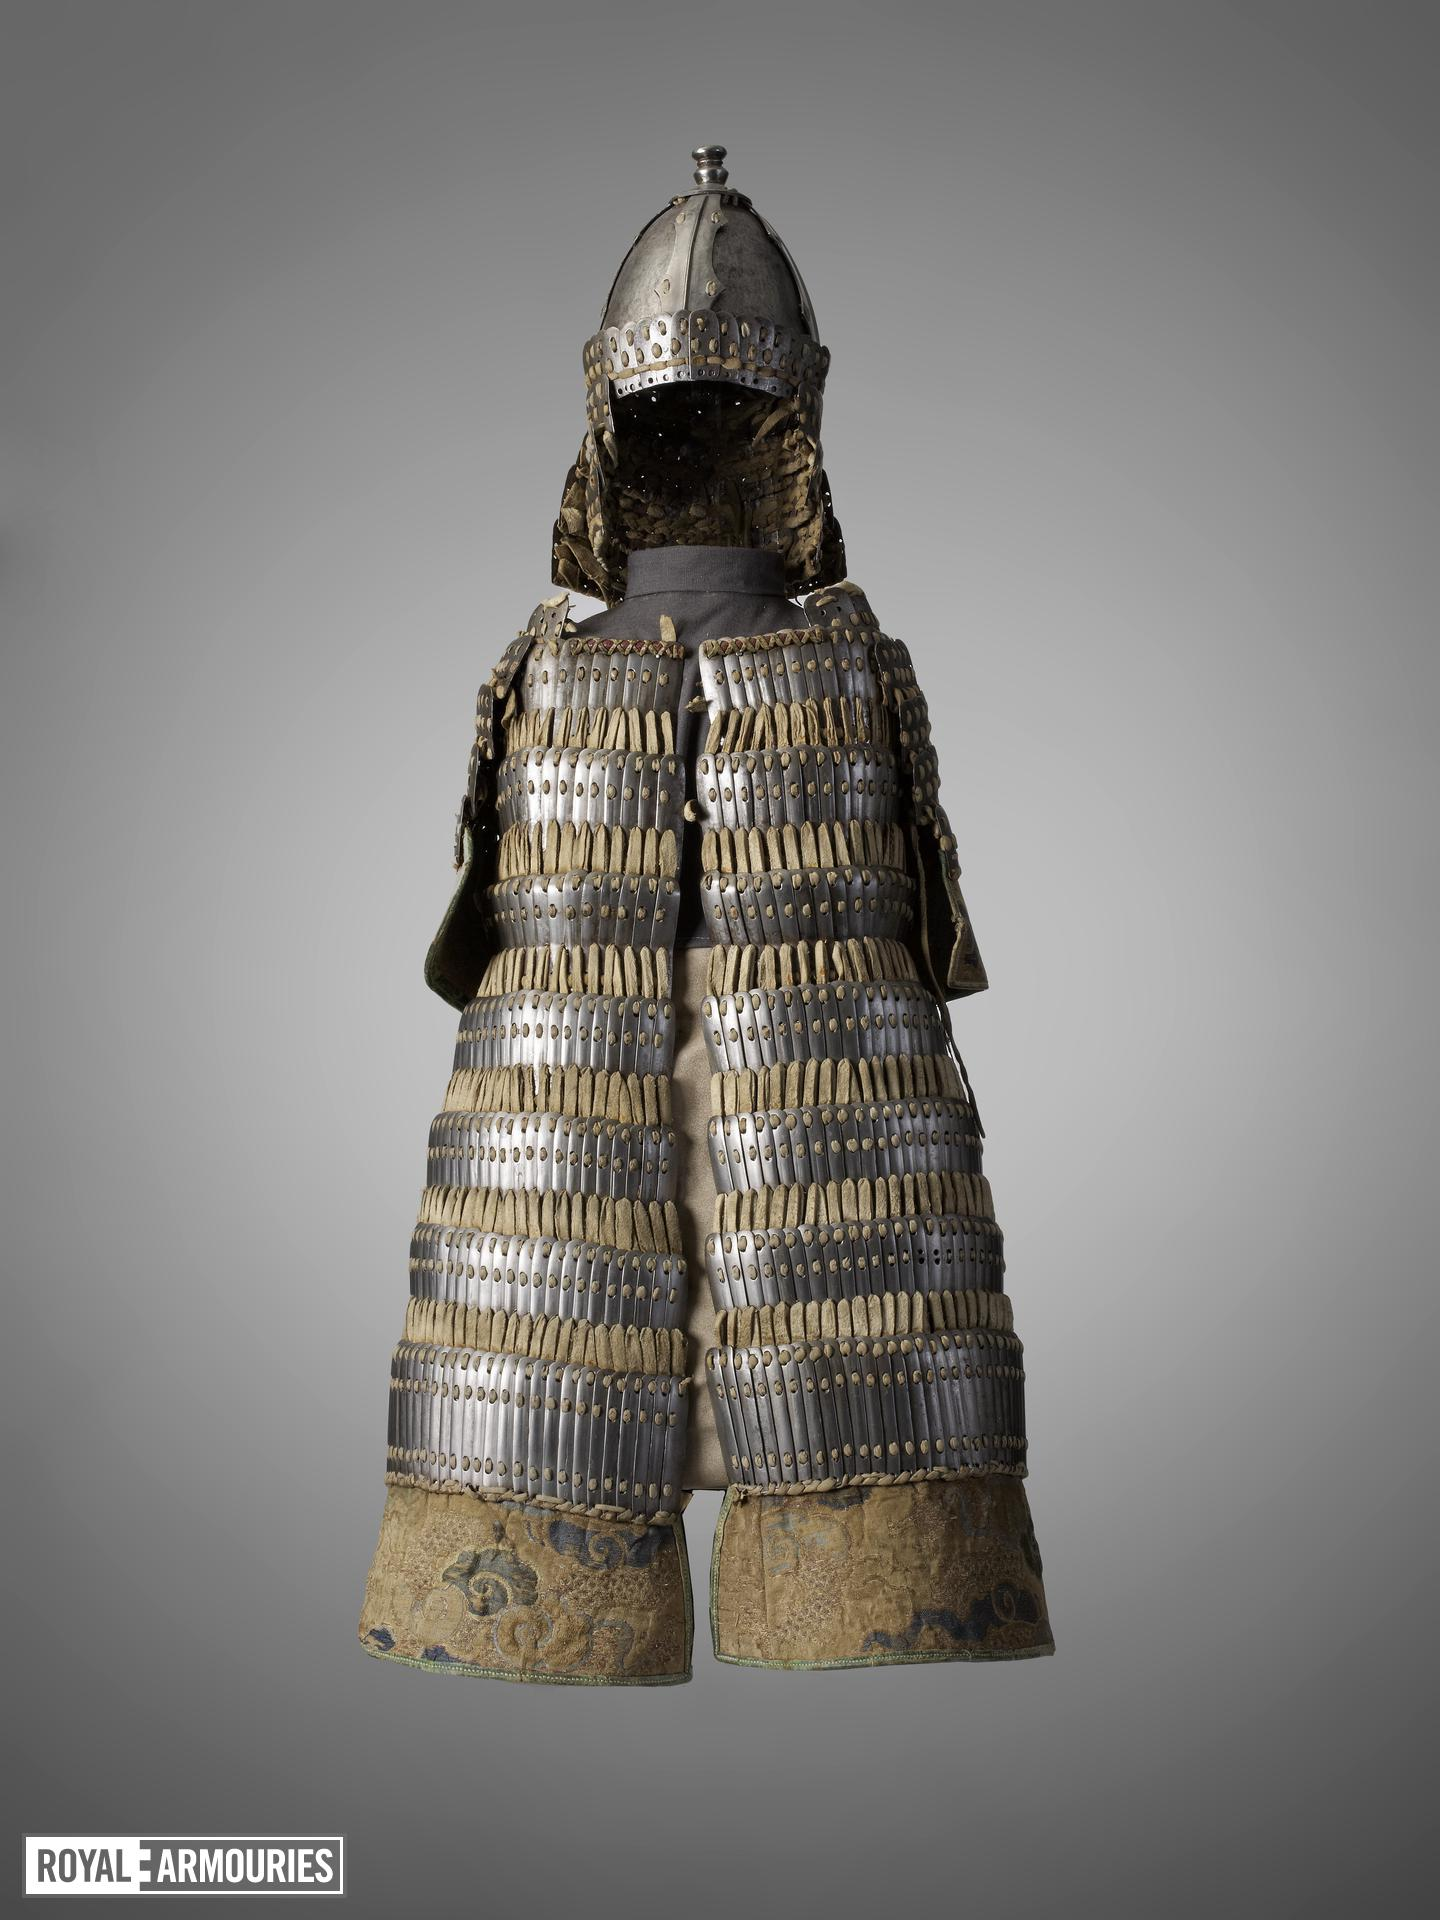 Model armour Model suit of lamellar armour including a coat and helmet, Tibet, 18th century